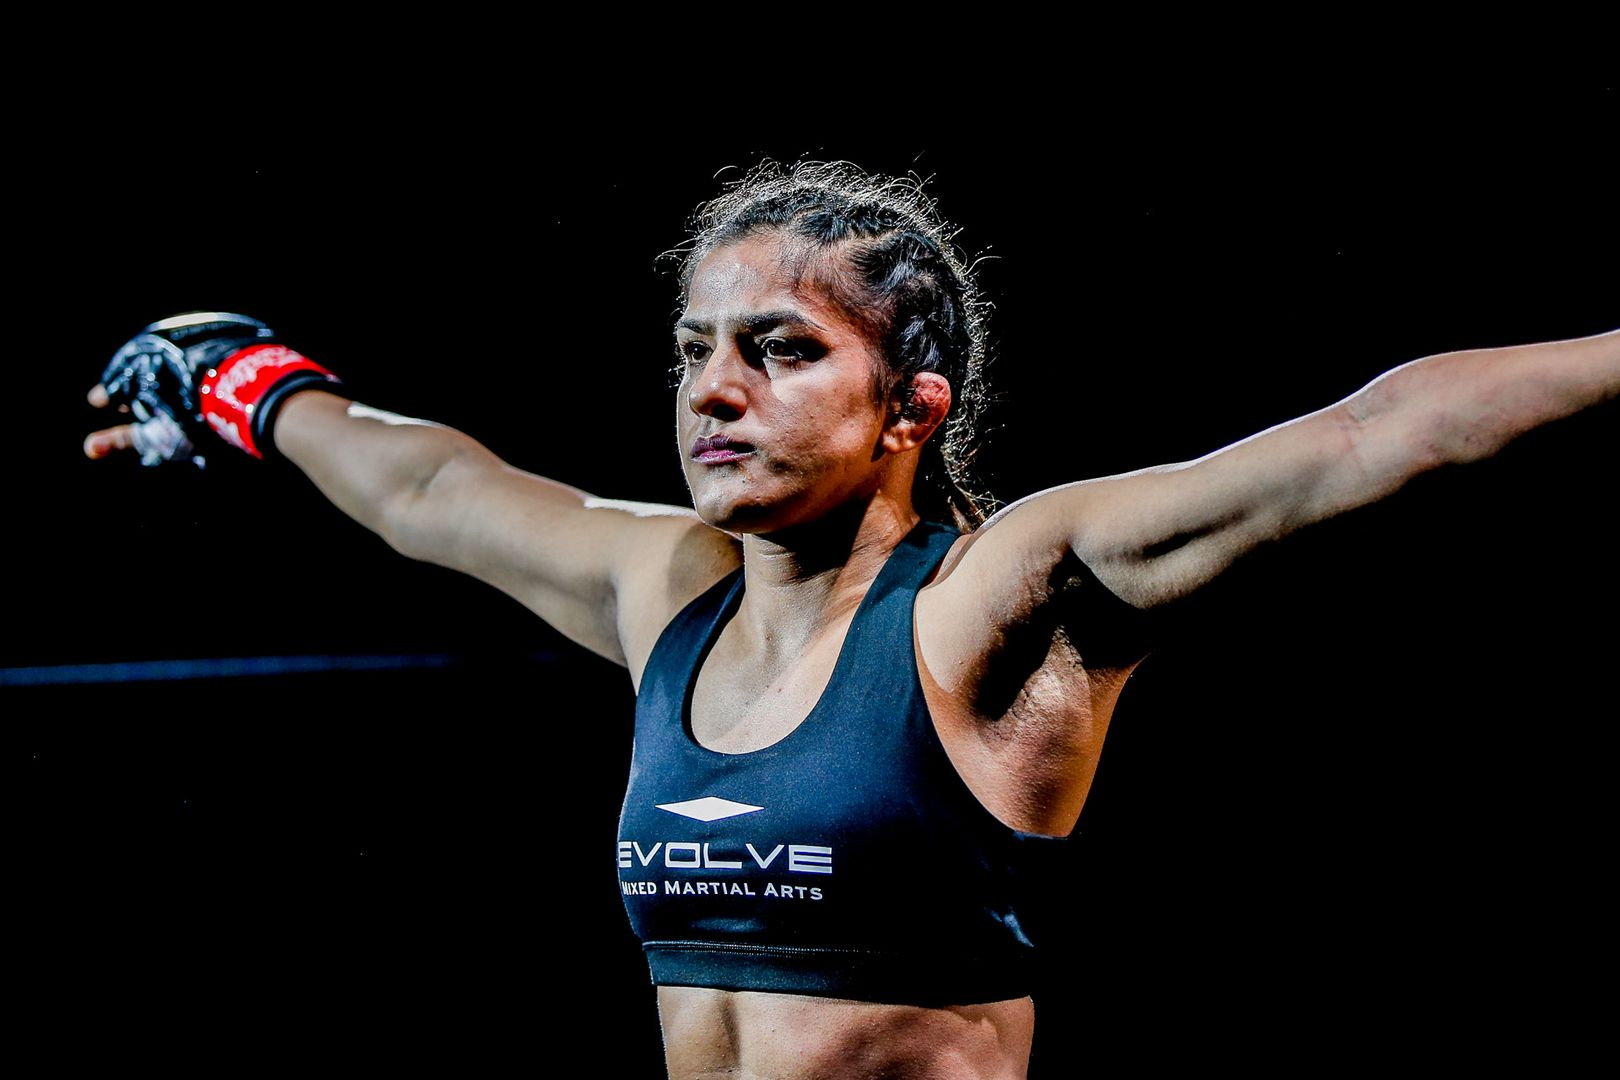 Ritu Phogat On Clash With Jomary Torres: I Am Fighting 'For My Country' - Ritu Phogat